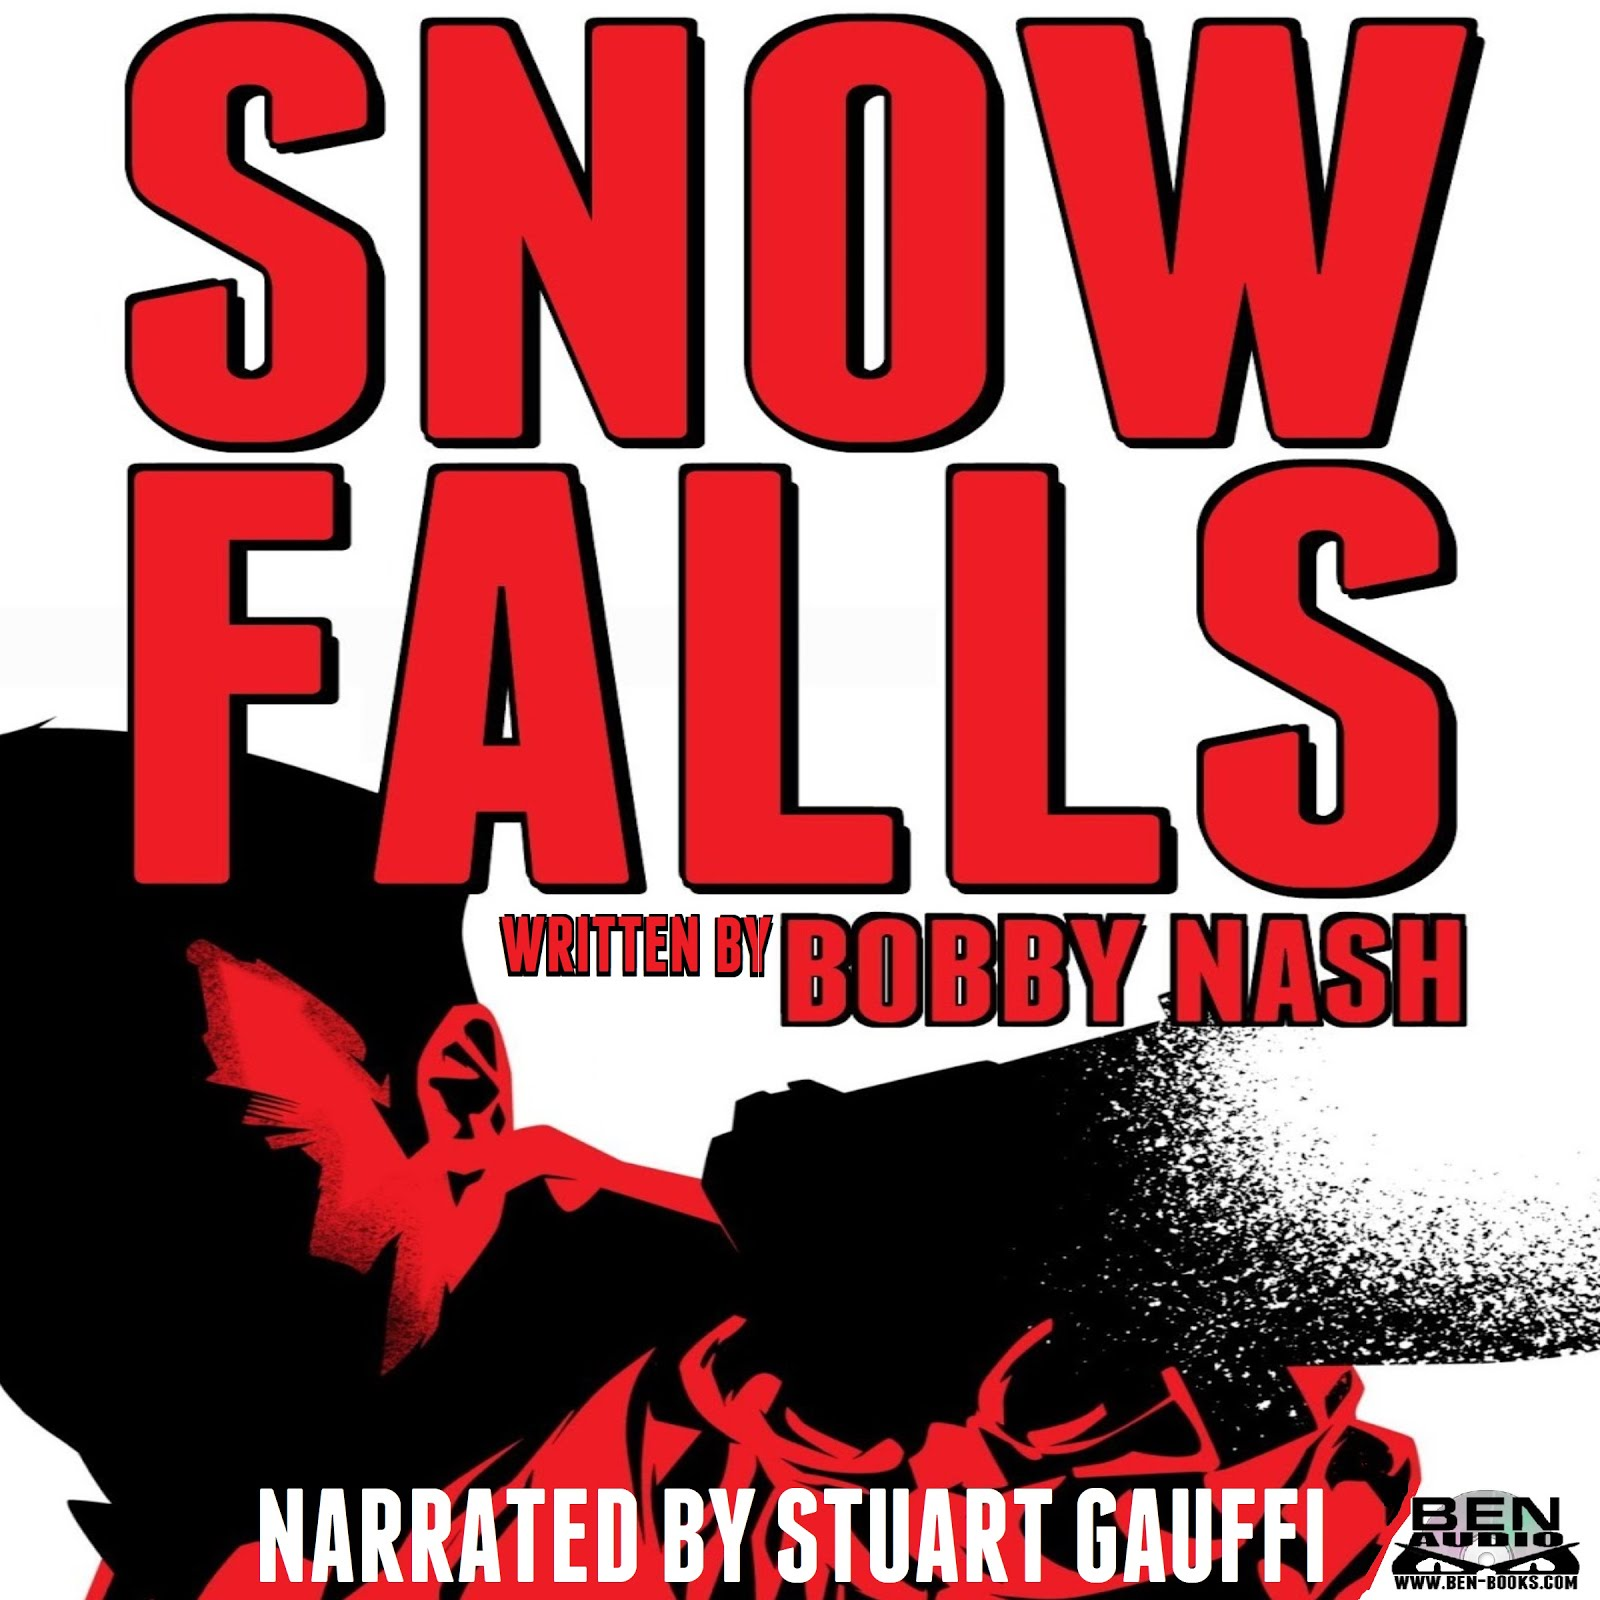 Audio Book written by Bobby Nash. Narrated by Stuart Gauffi.